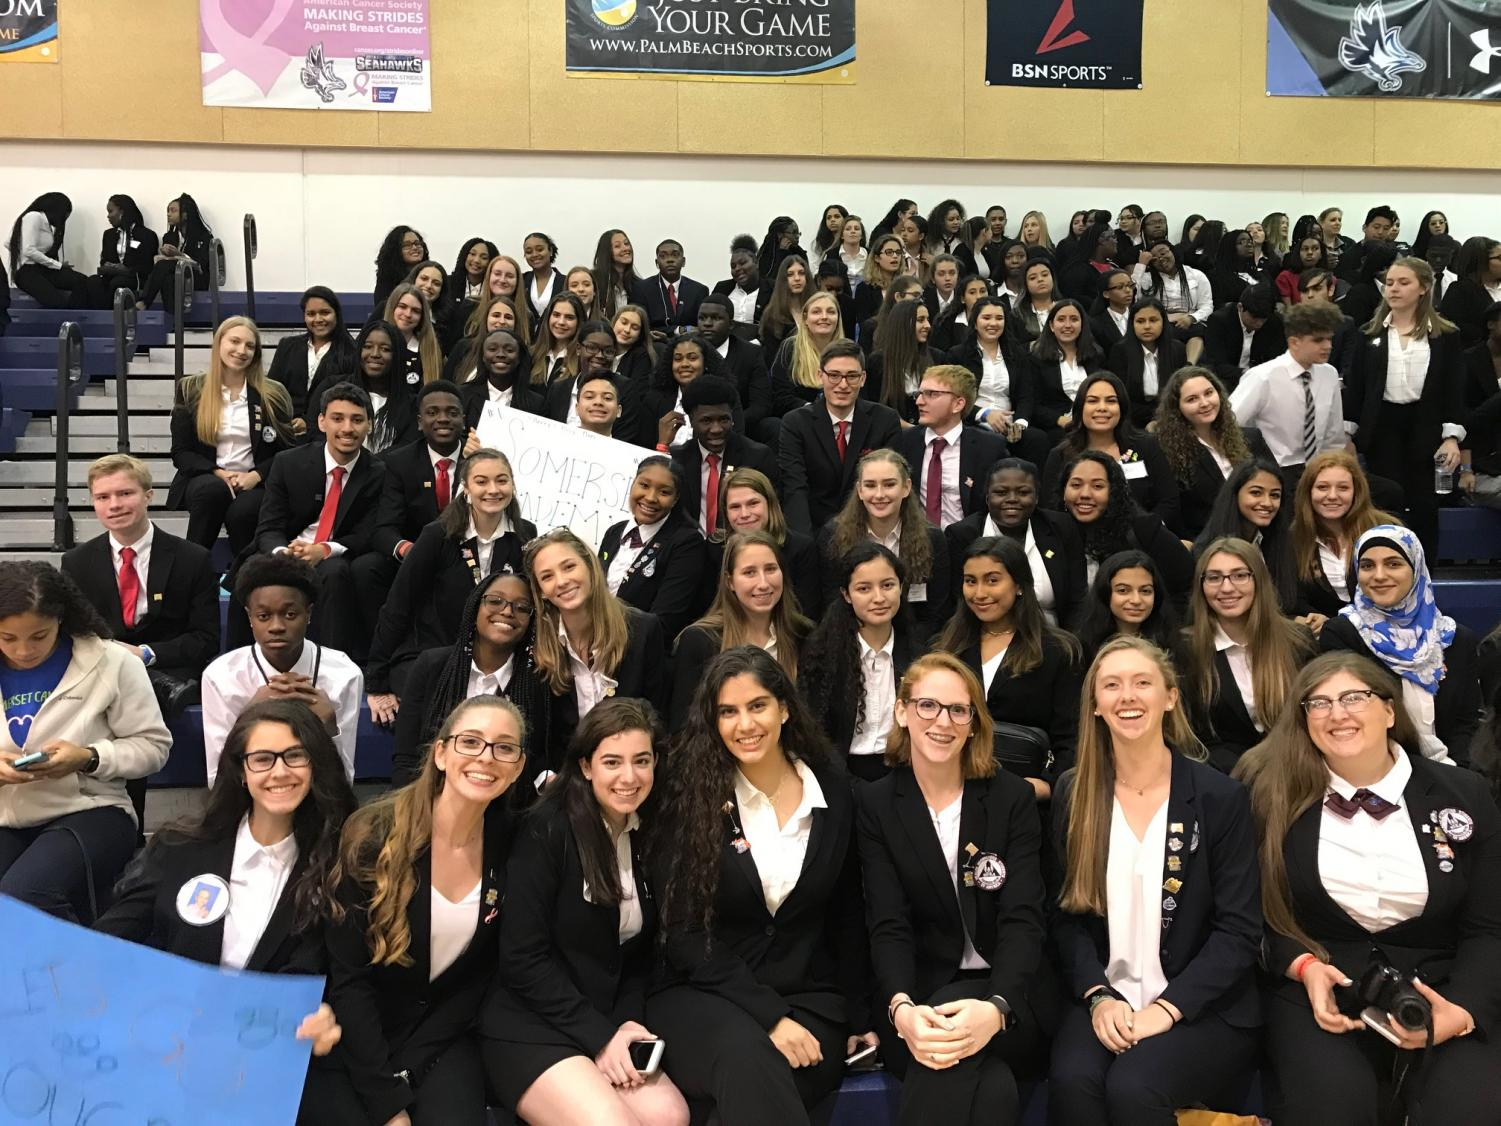 Our HOSA students smile for the camera as they wait to hear the results of the events.